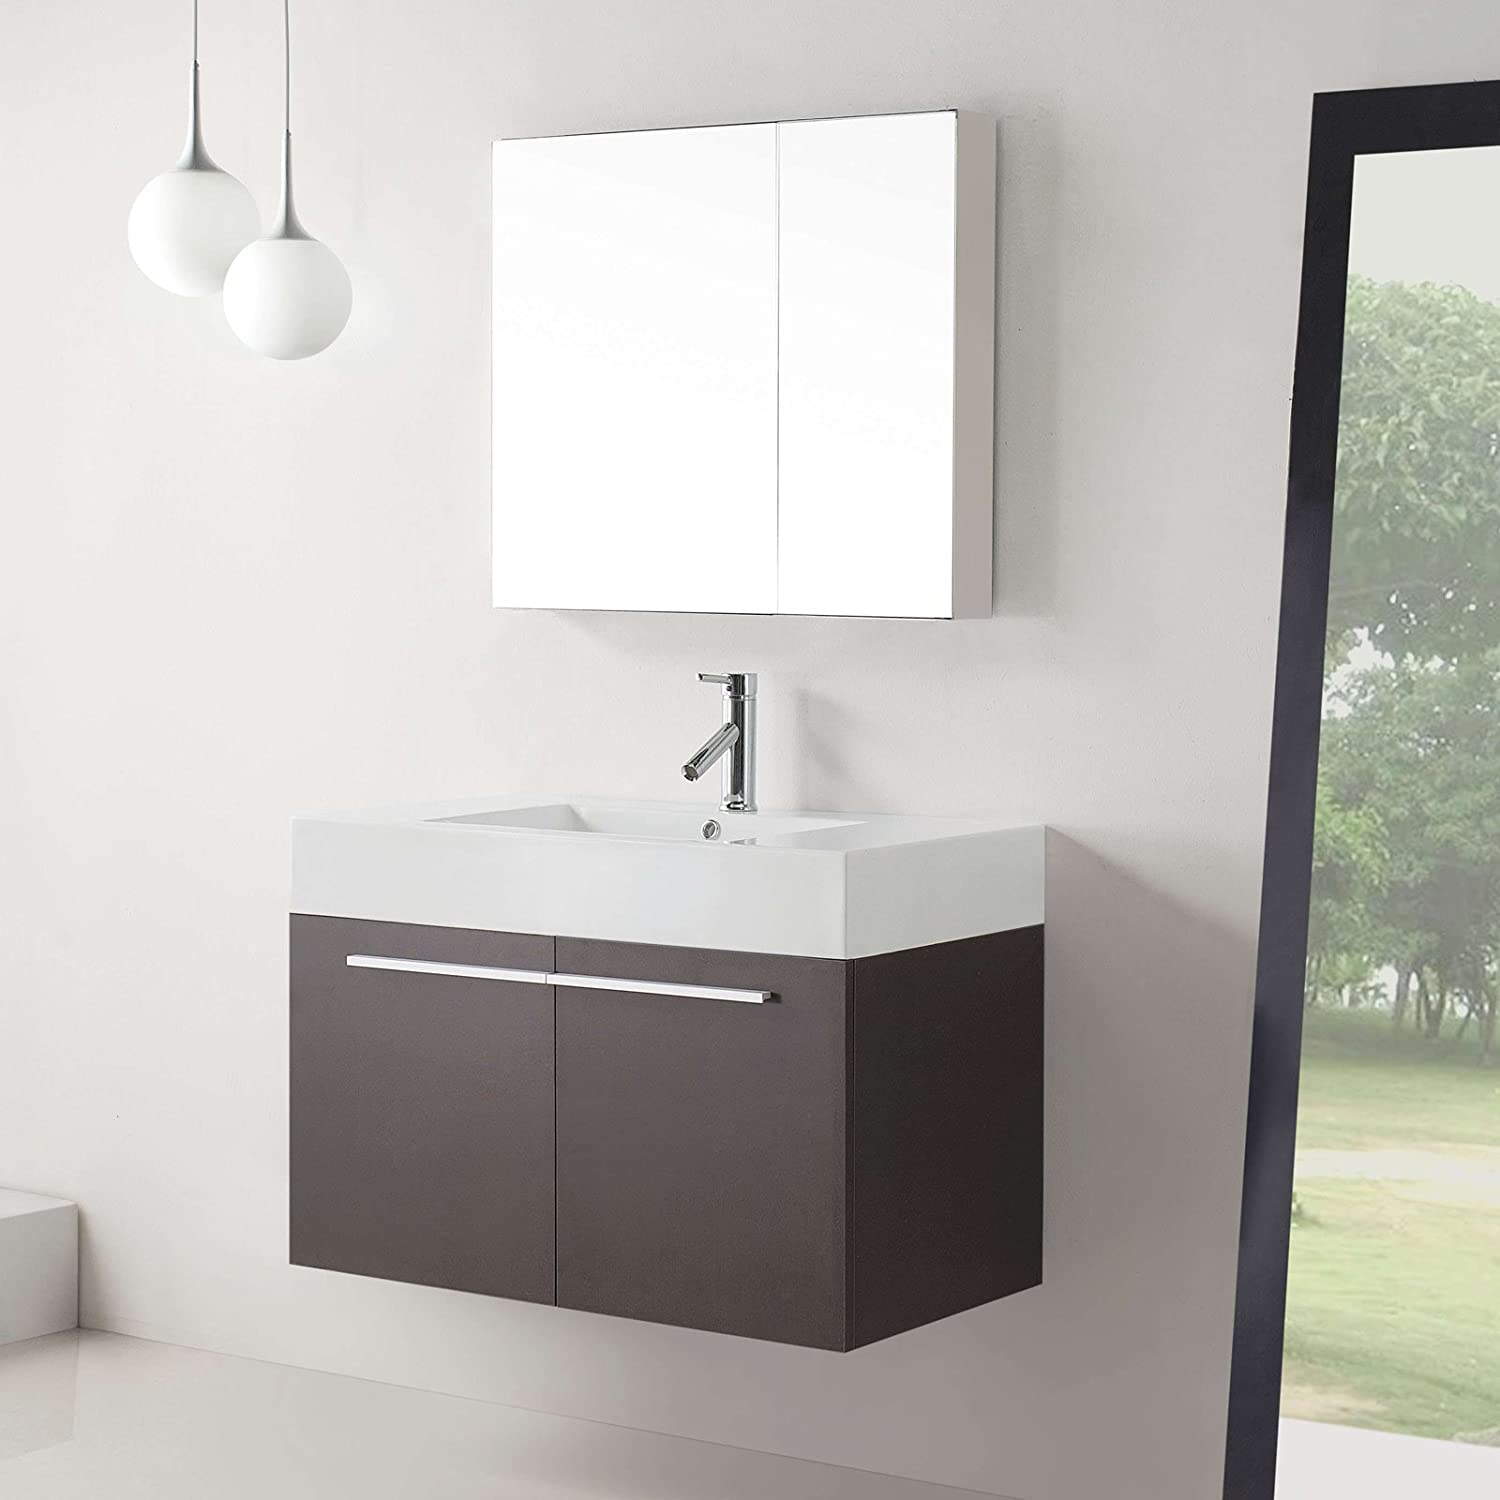 Virtu USA JS 50136 GW 36 Inch Midori Single Sink Bathroom Vanity, Gloss  White     Amazon.com